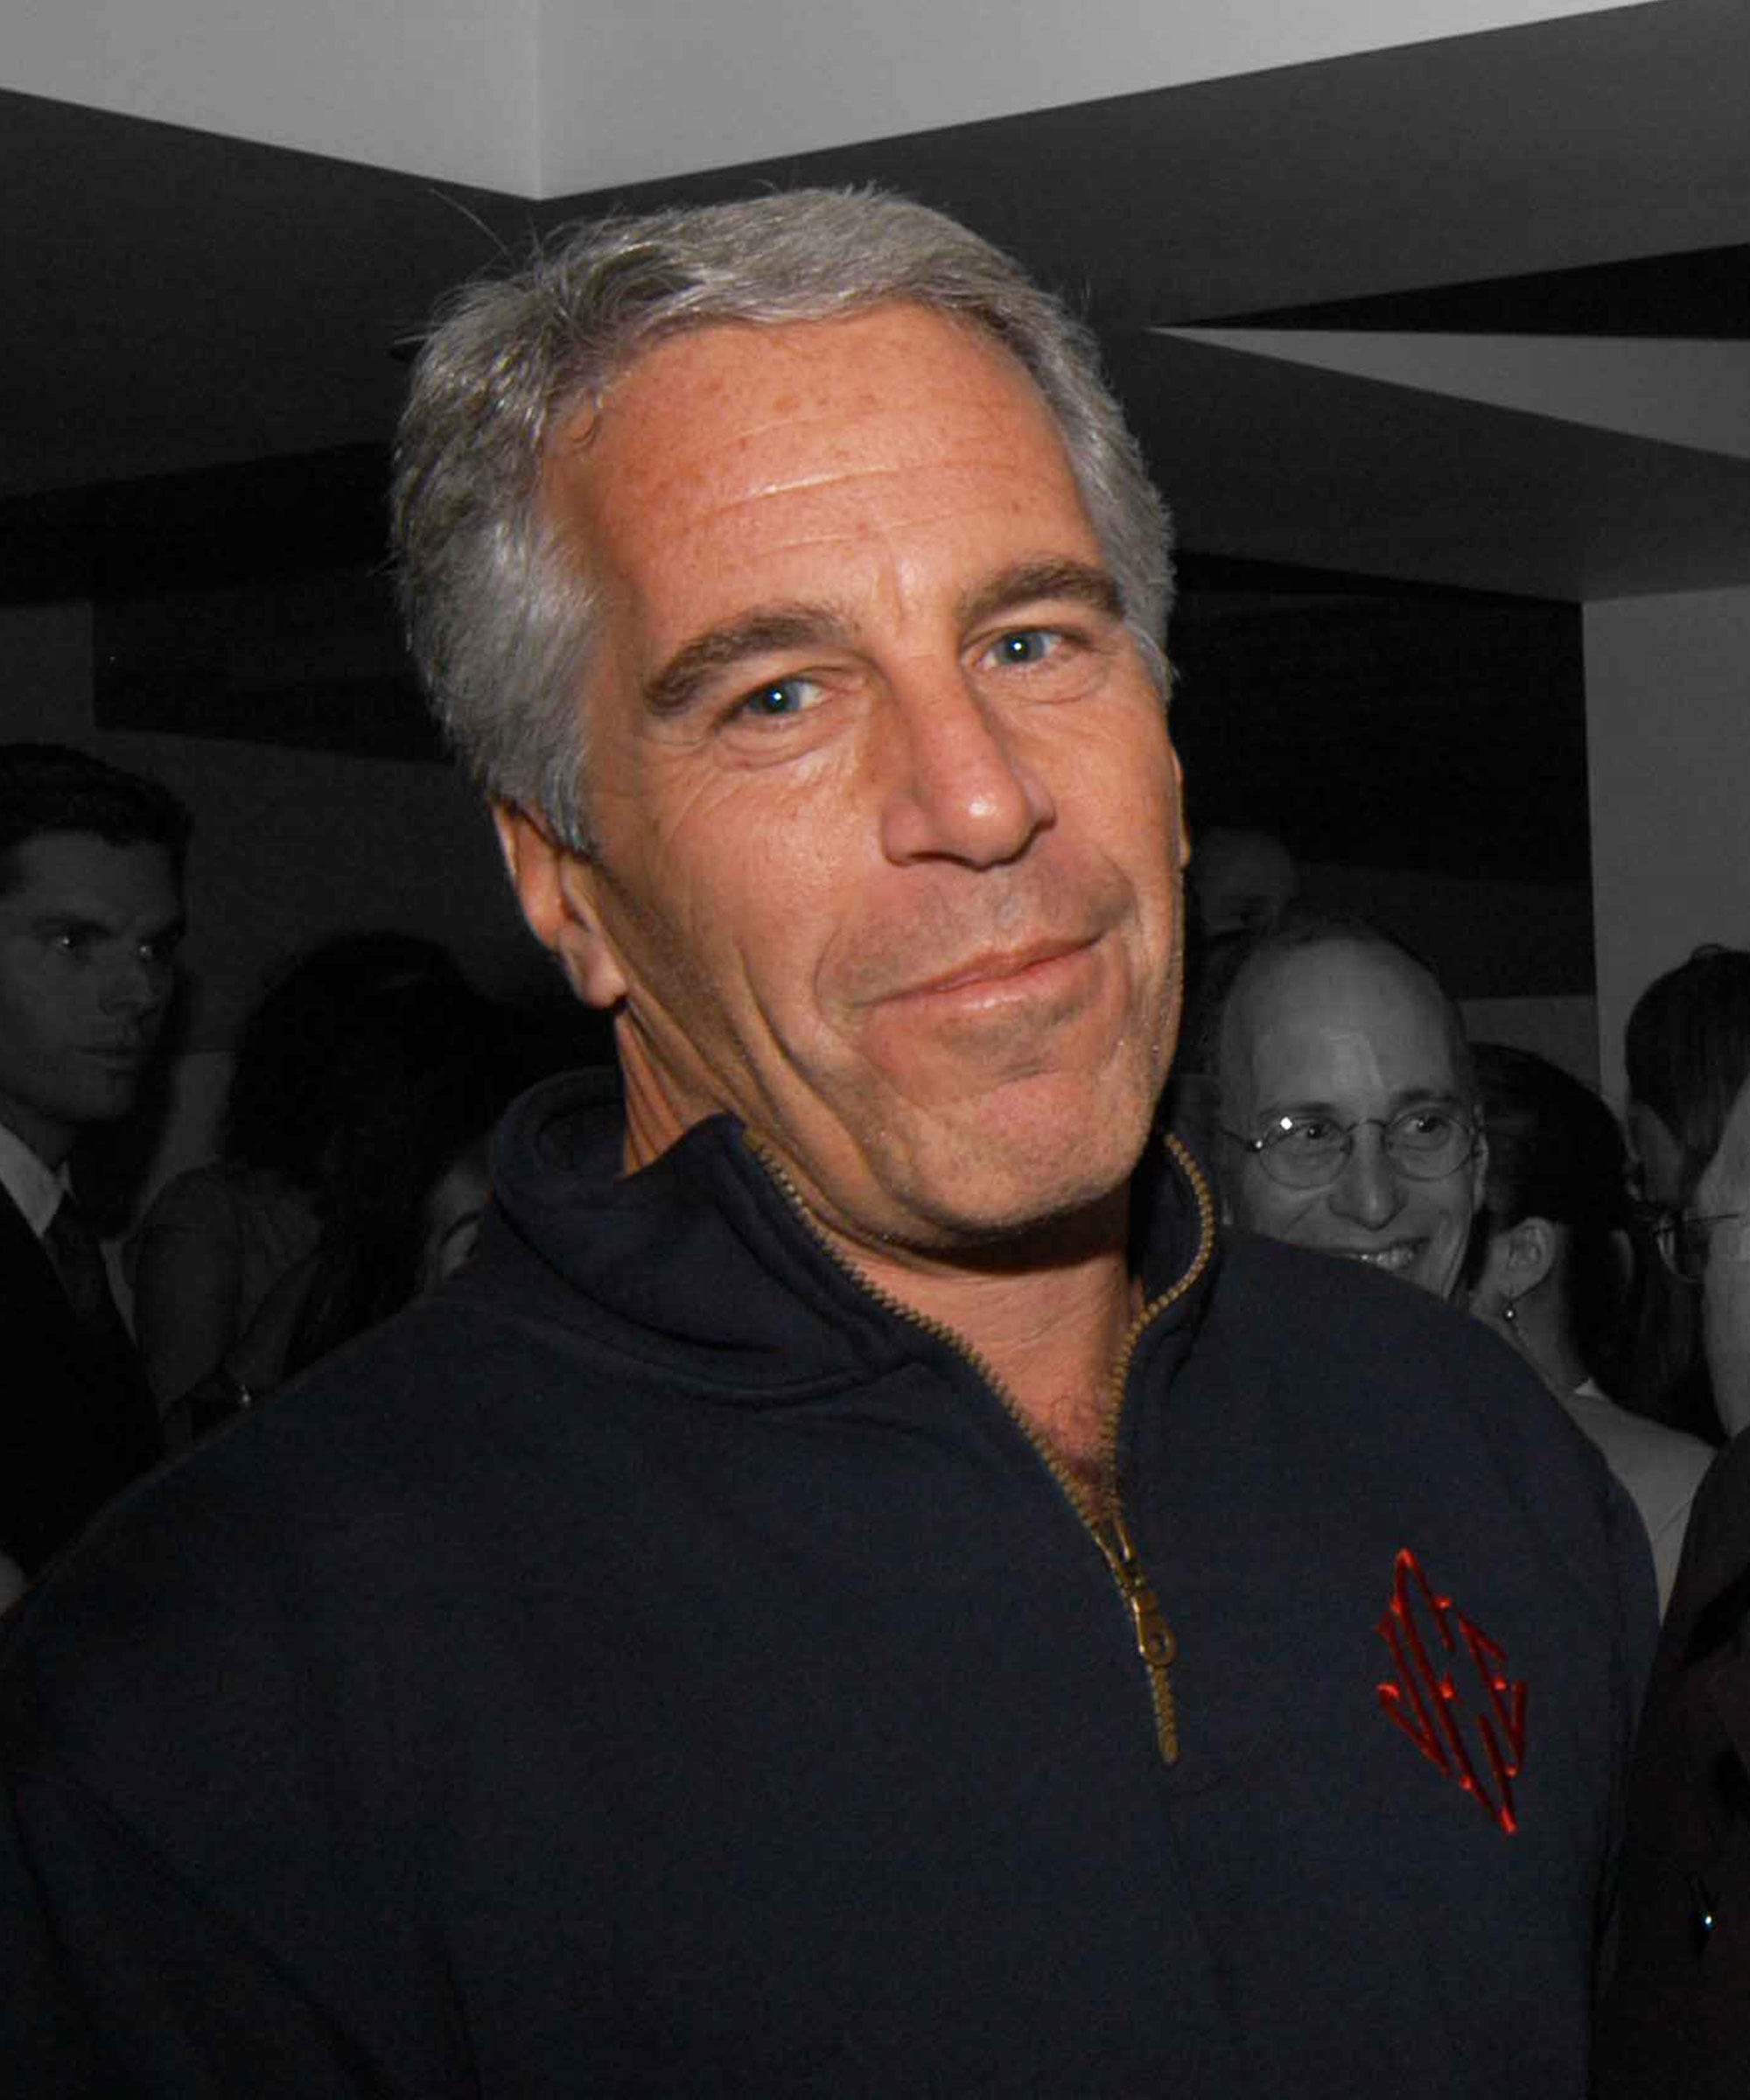 Royal Family Connections To Jeffrey Epstein Explained